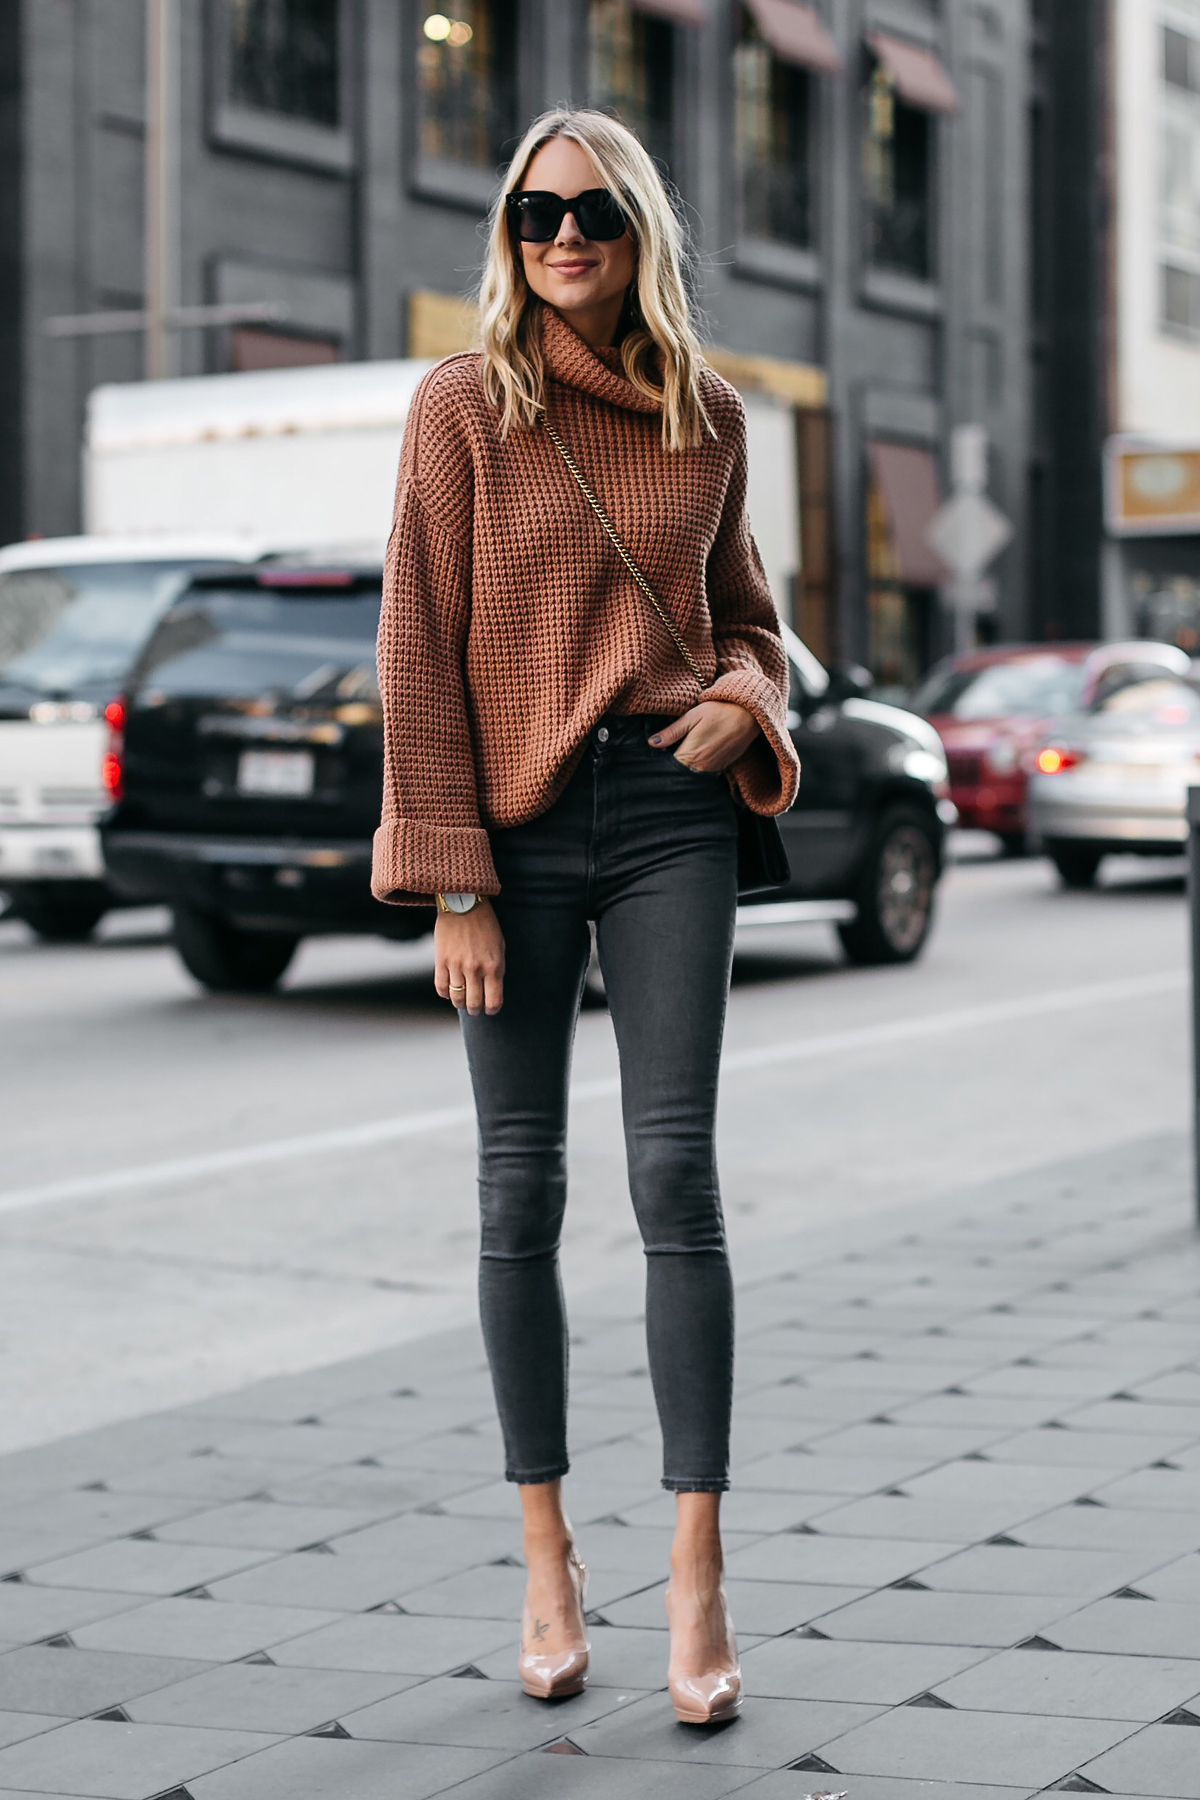 Fashion Jackson Oversized Sweater Free People Park City Pullover Tan Sweater Grey Skinny Jeans Chrisitian Louboutin Nude Pumps